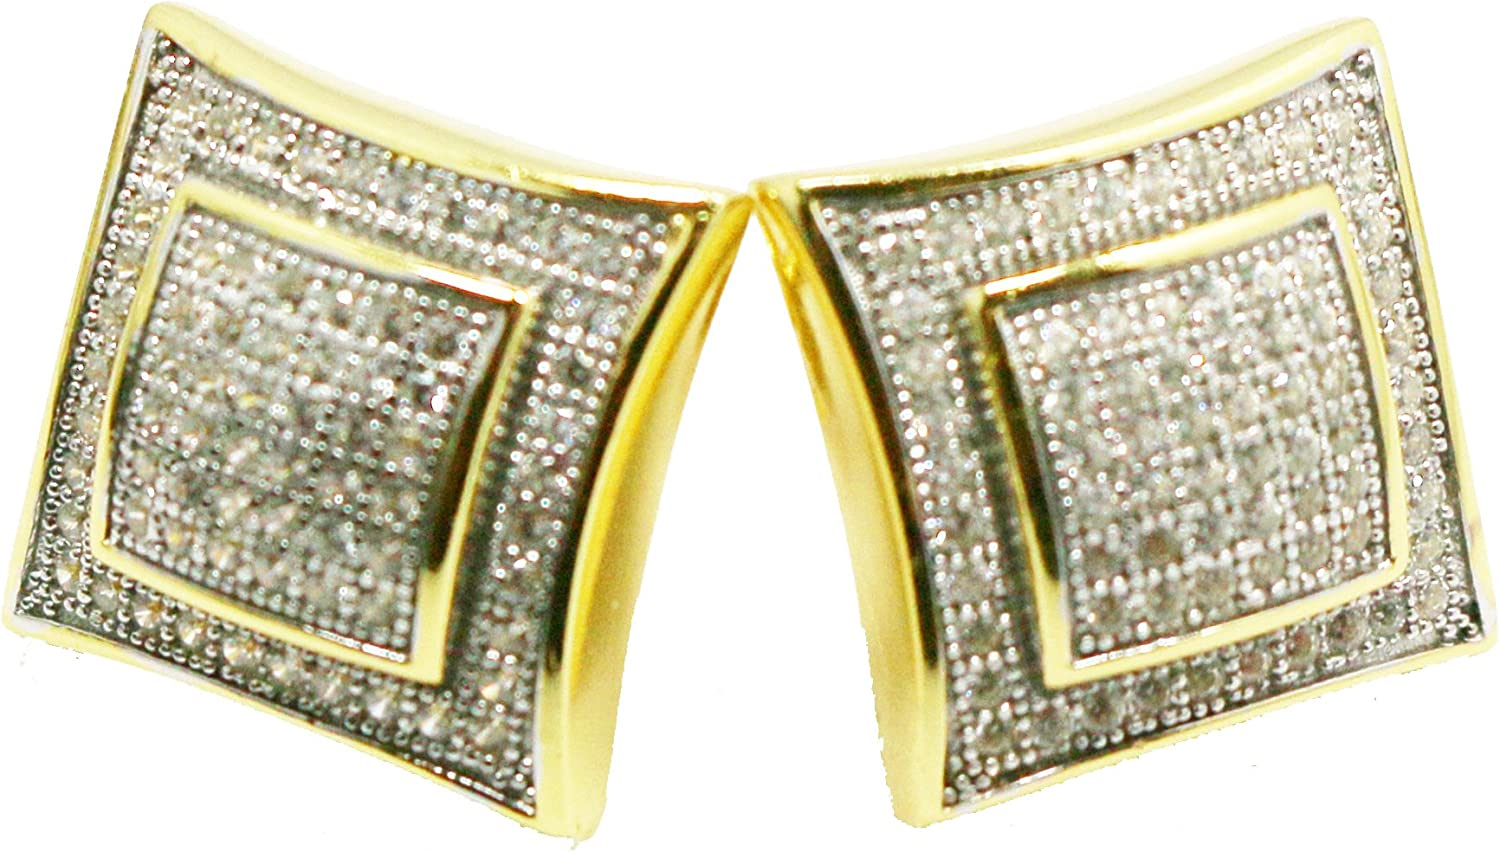 MEN LADIES SQUARE KITE STYLE GOLD FINISH EARRING STUD MICROPAVE 12 MM SCREW BACK